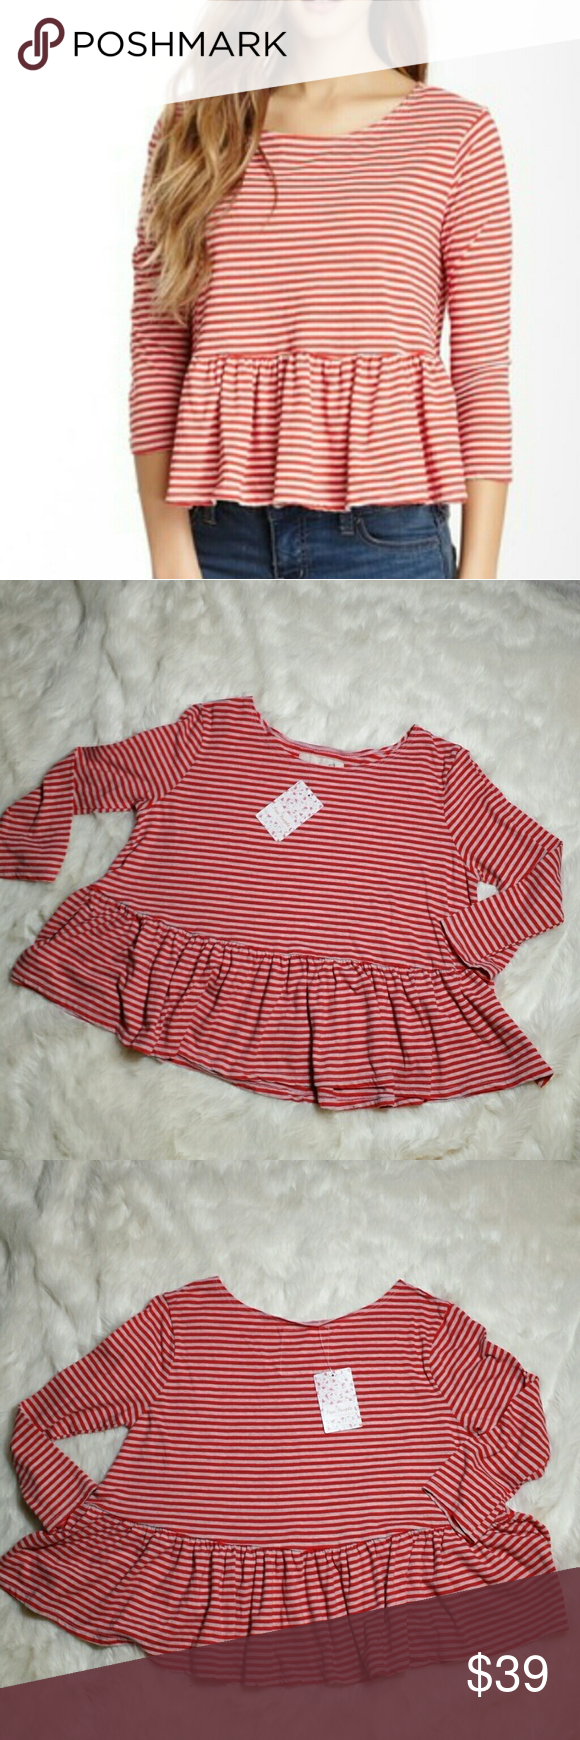 """Free People Striped NWT Peplum Shirt Size Medium Free People Striped Peplum shirt. Size medium. New with tags. Red and oatmeal colored stripes. Longsleeve with ruffled peplum. 50% cotton and 50% polyester makes for a soft stretchy top. Size medium. Retail $58. Measurements Pit to Pit 20"""" Top of shoulder to bottom hem 20"""" Free People Tops Tees - Long Sleeve"""